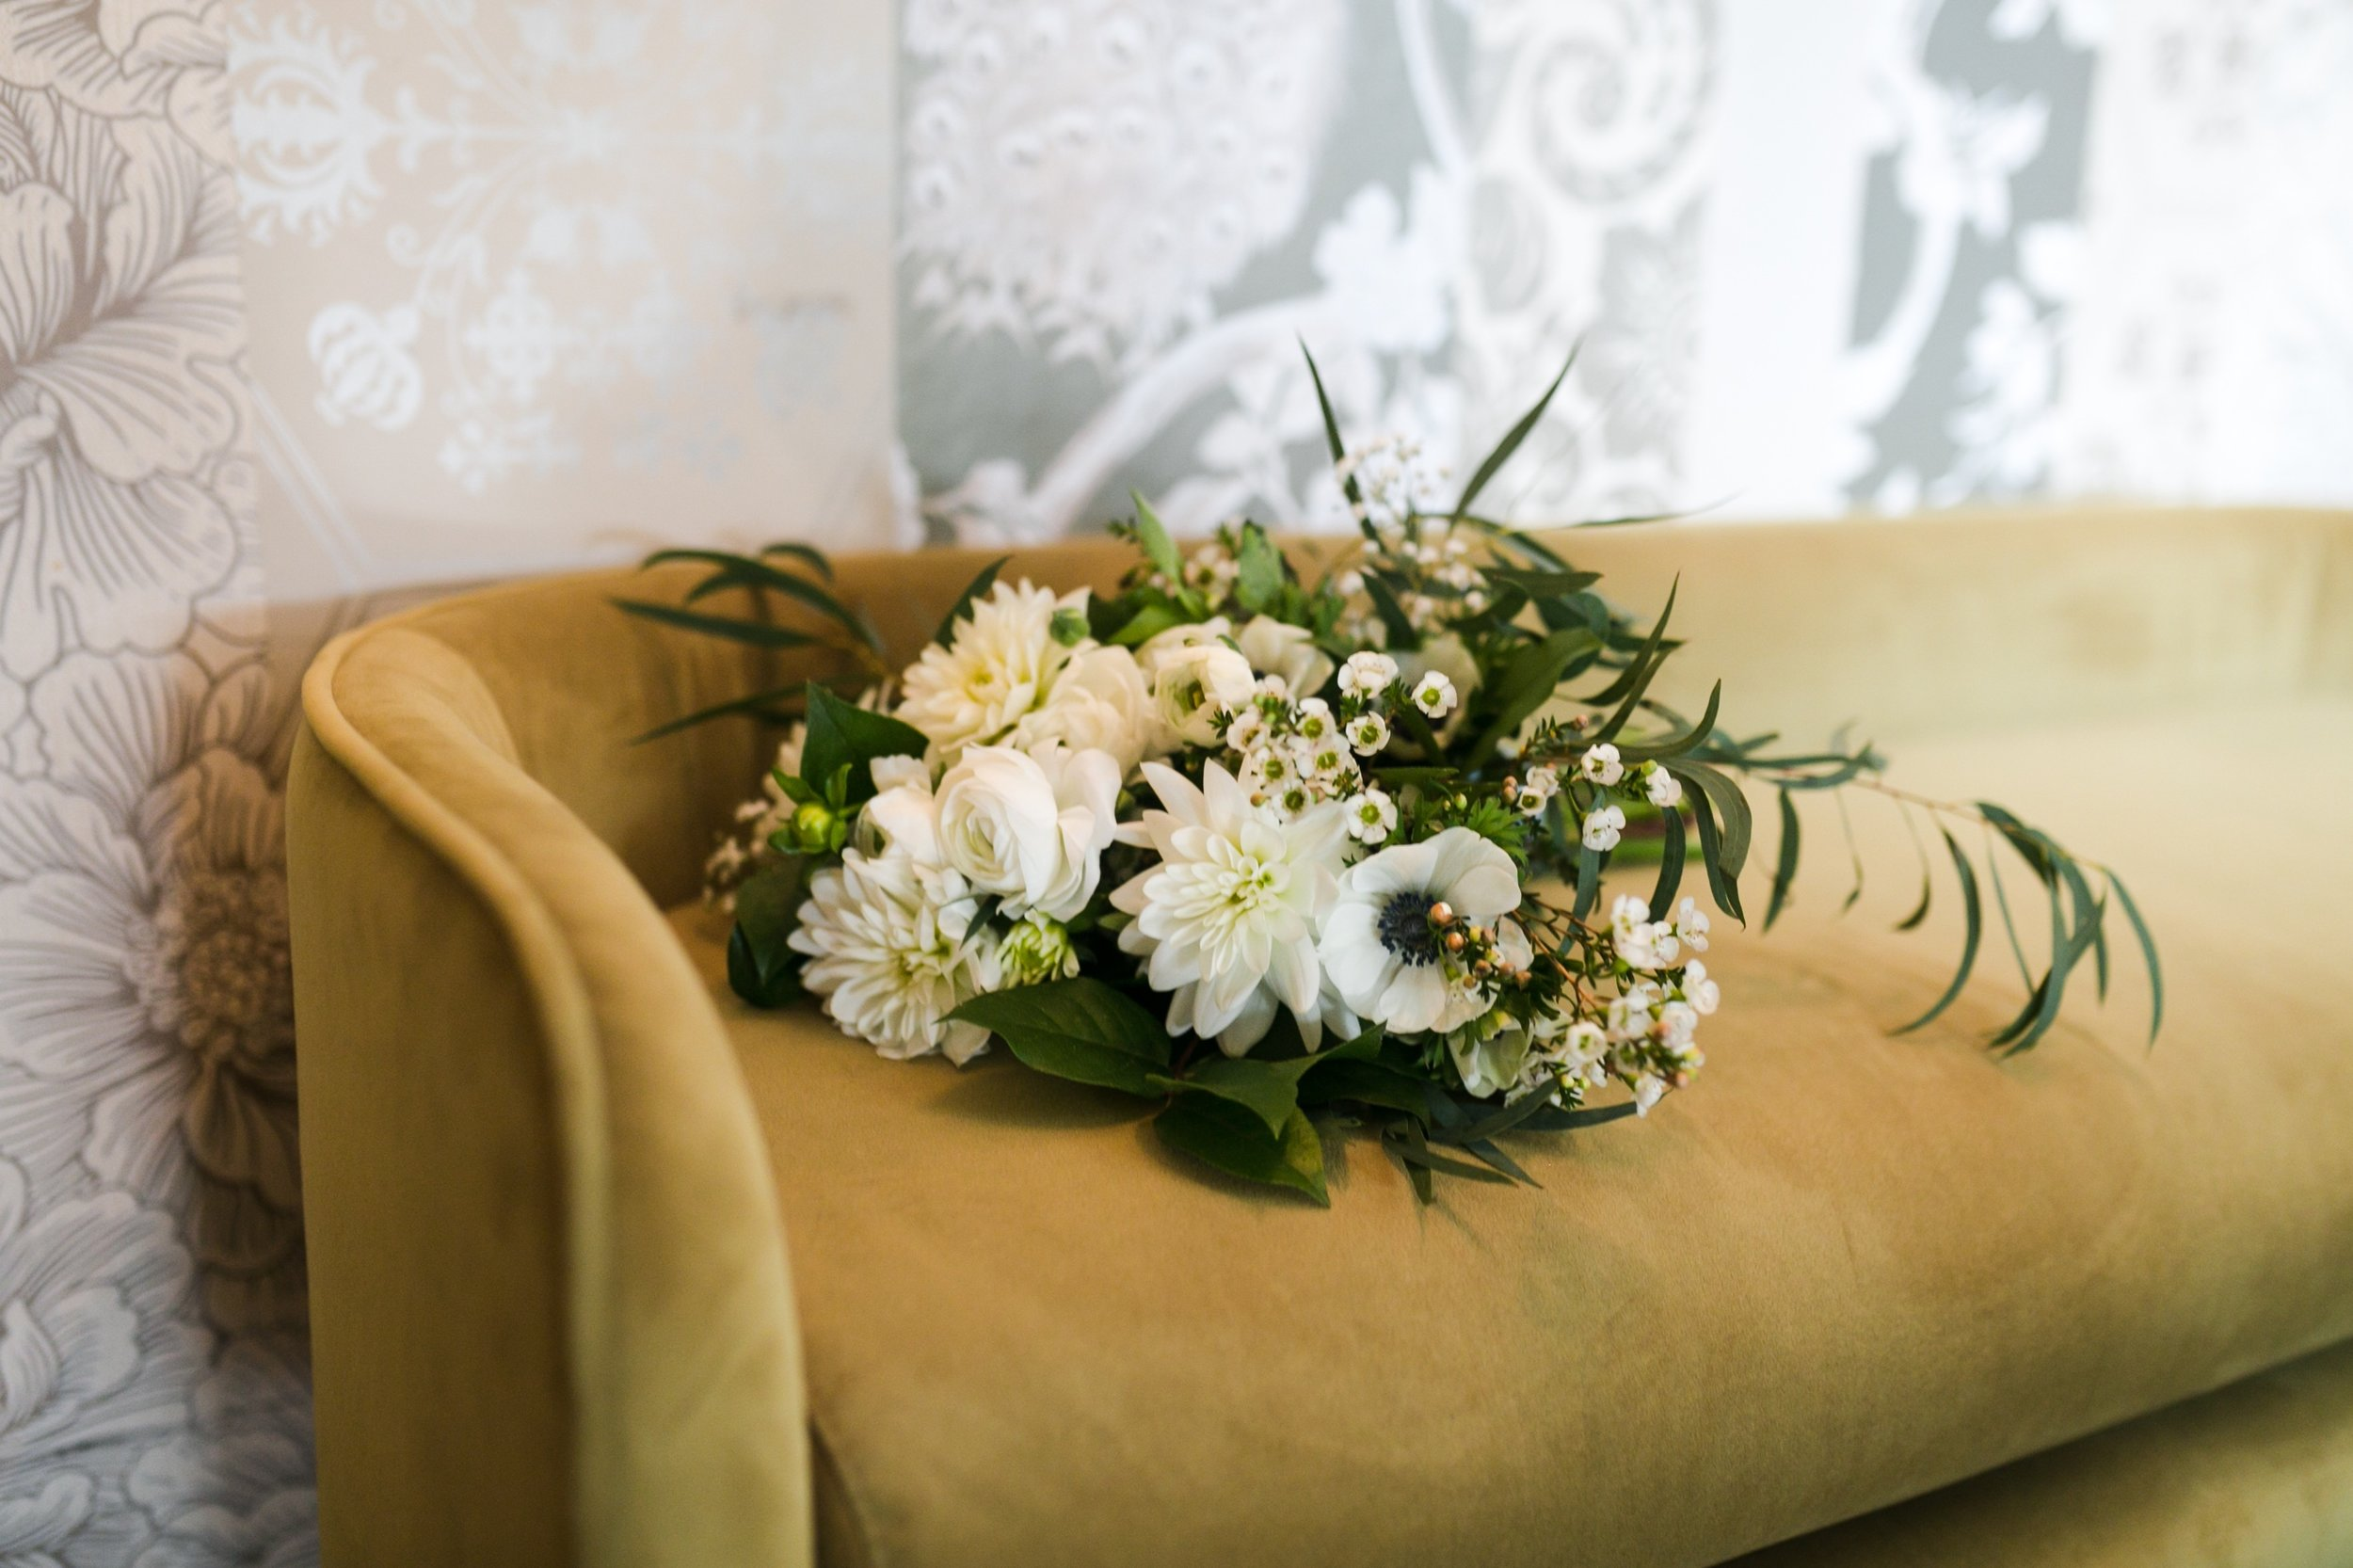 all white bouquet with anemone and dahlias #whitebouquet #lrqcfloral